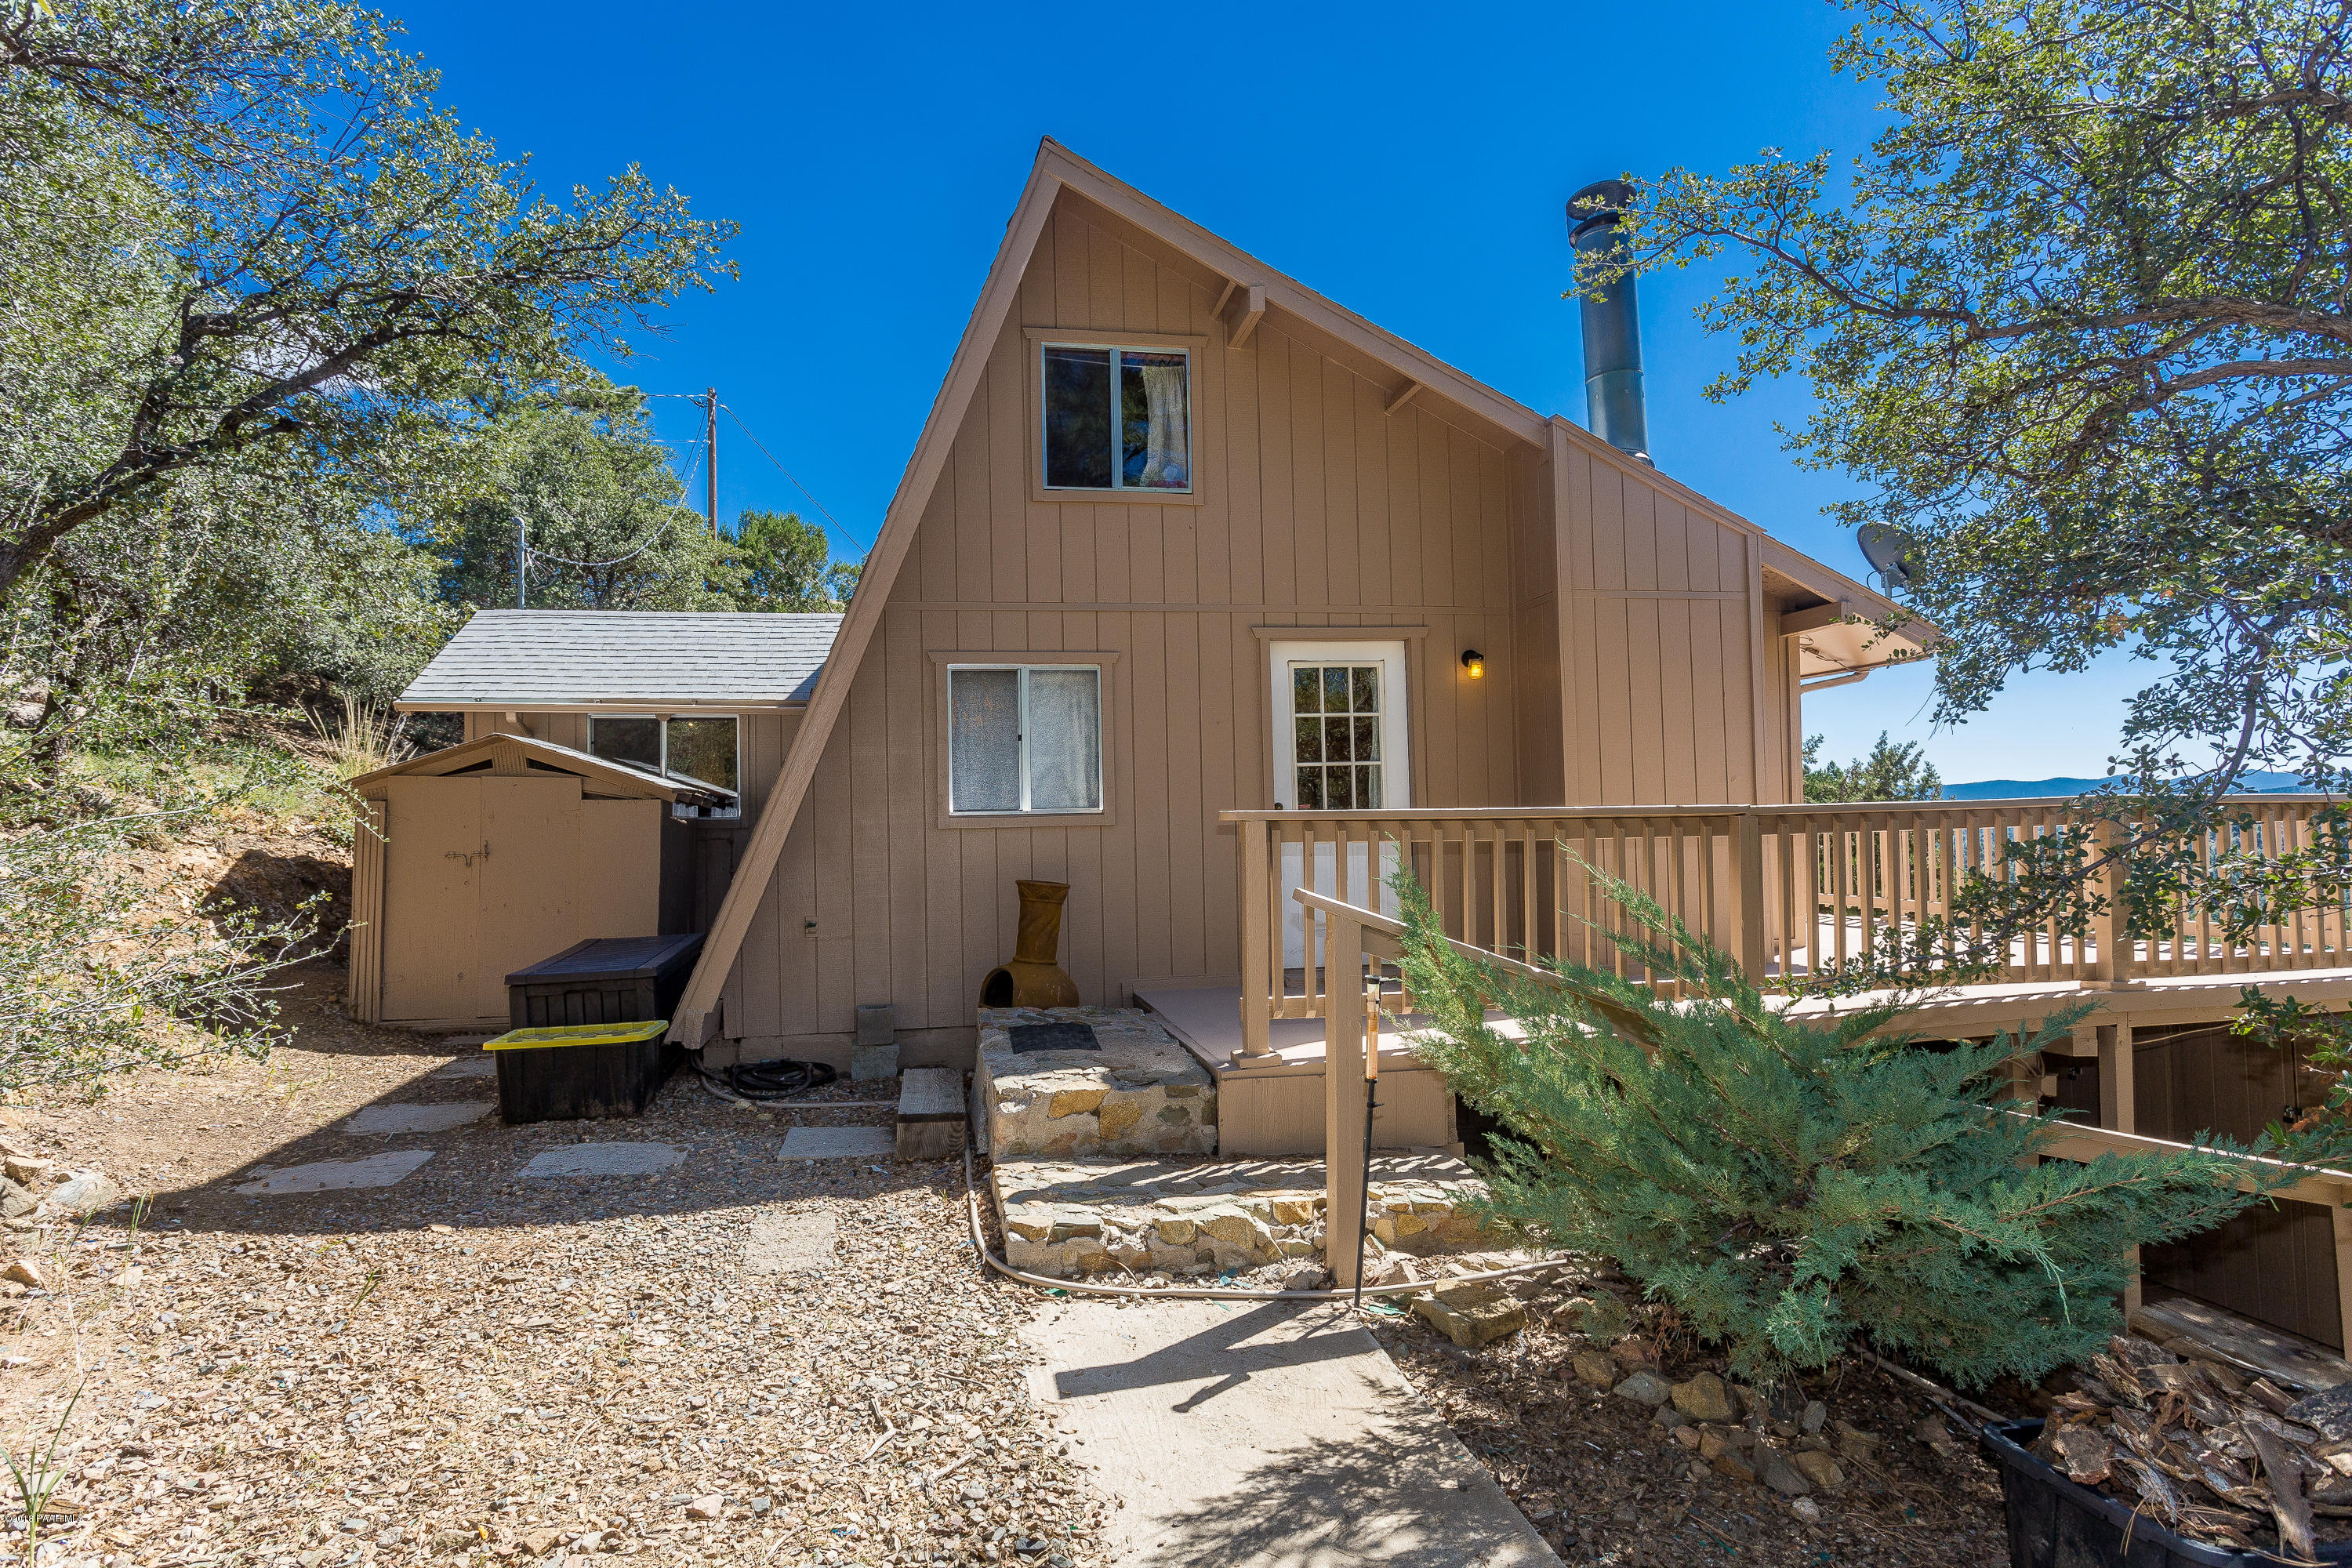 704 N Valley View Drive, Prescott Az 86305